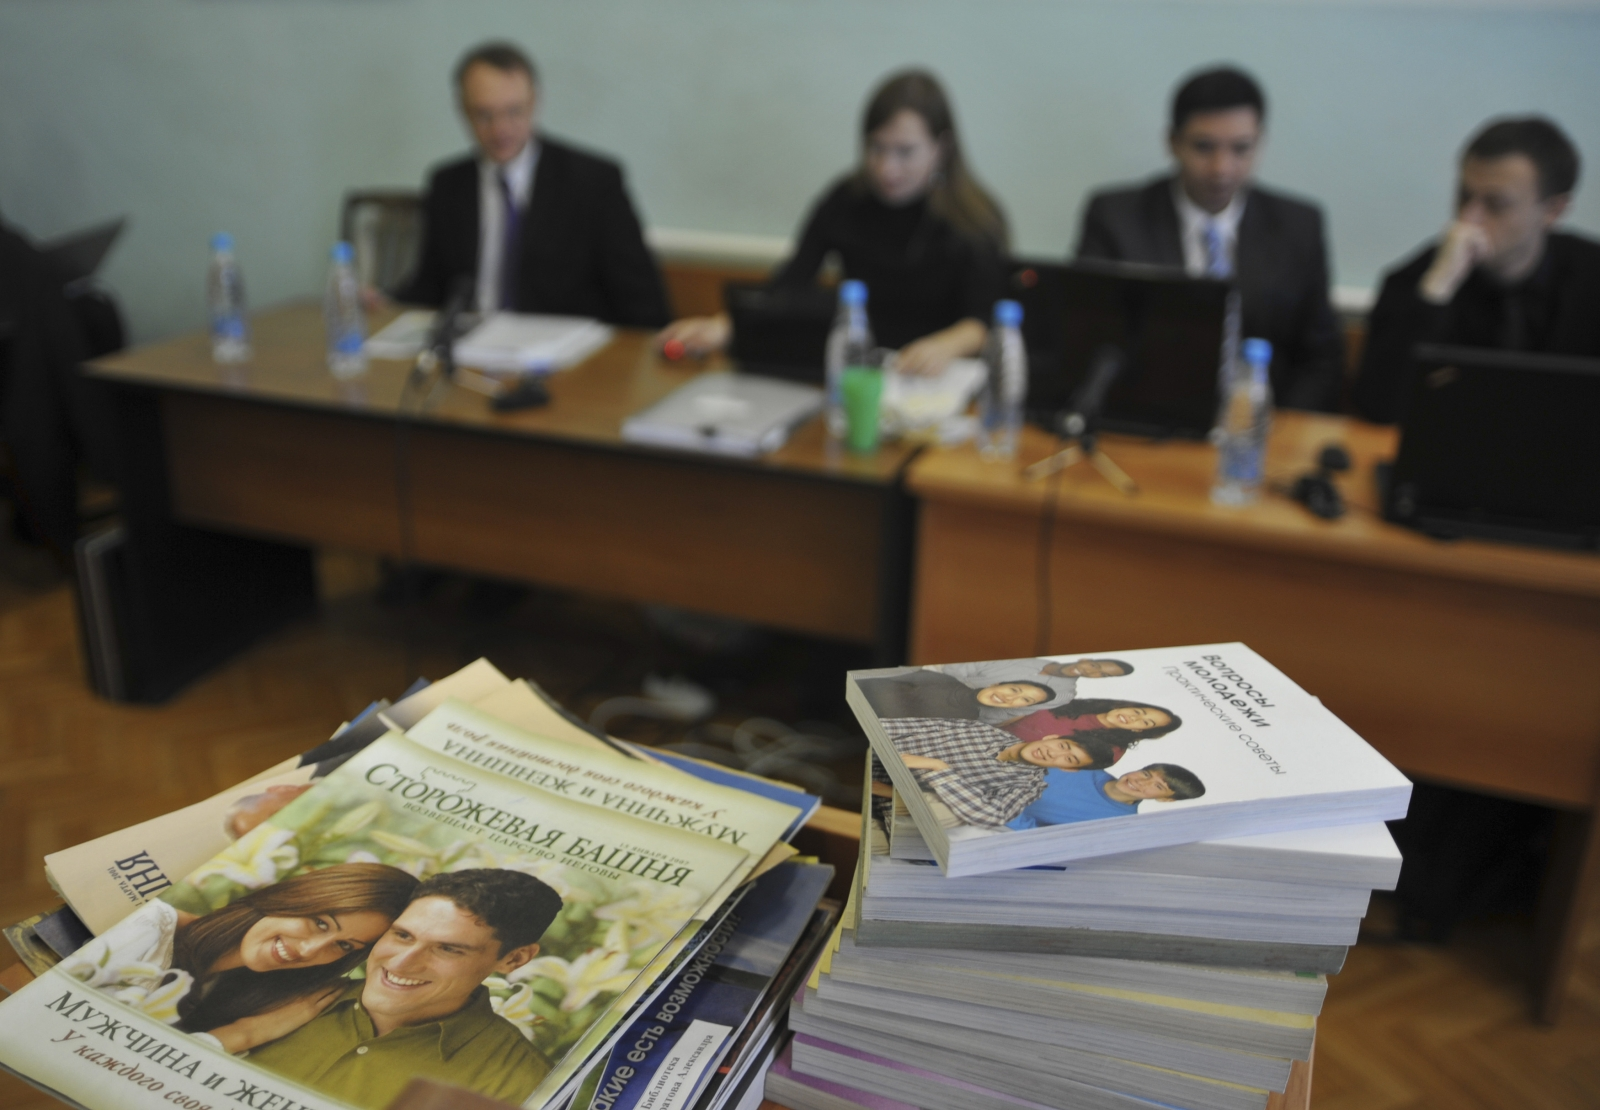 Jehovah S Witness Toy : Russia bans jehovah s witnesses as extremist organisation